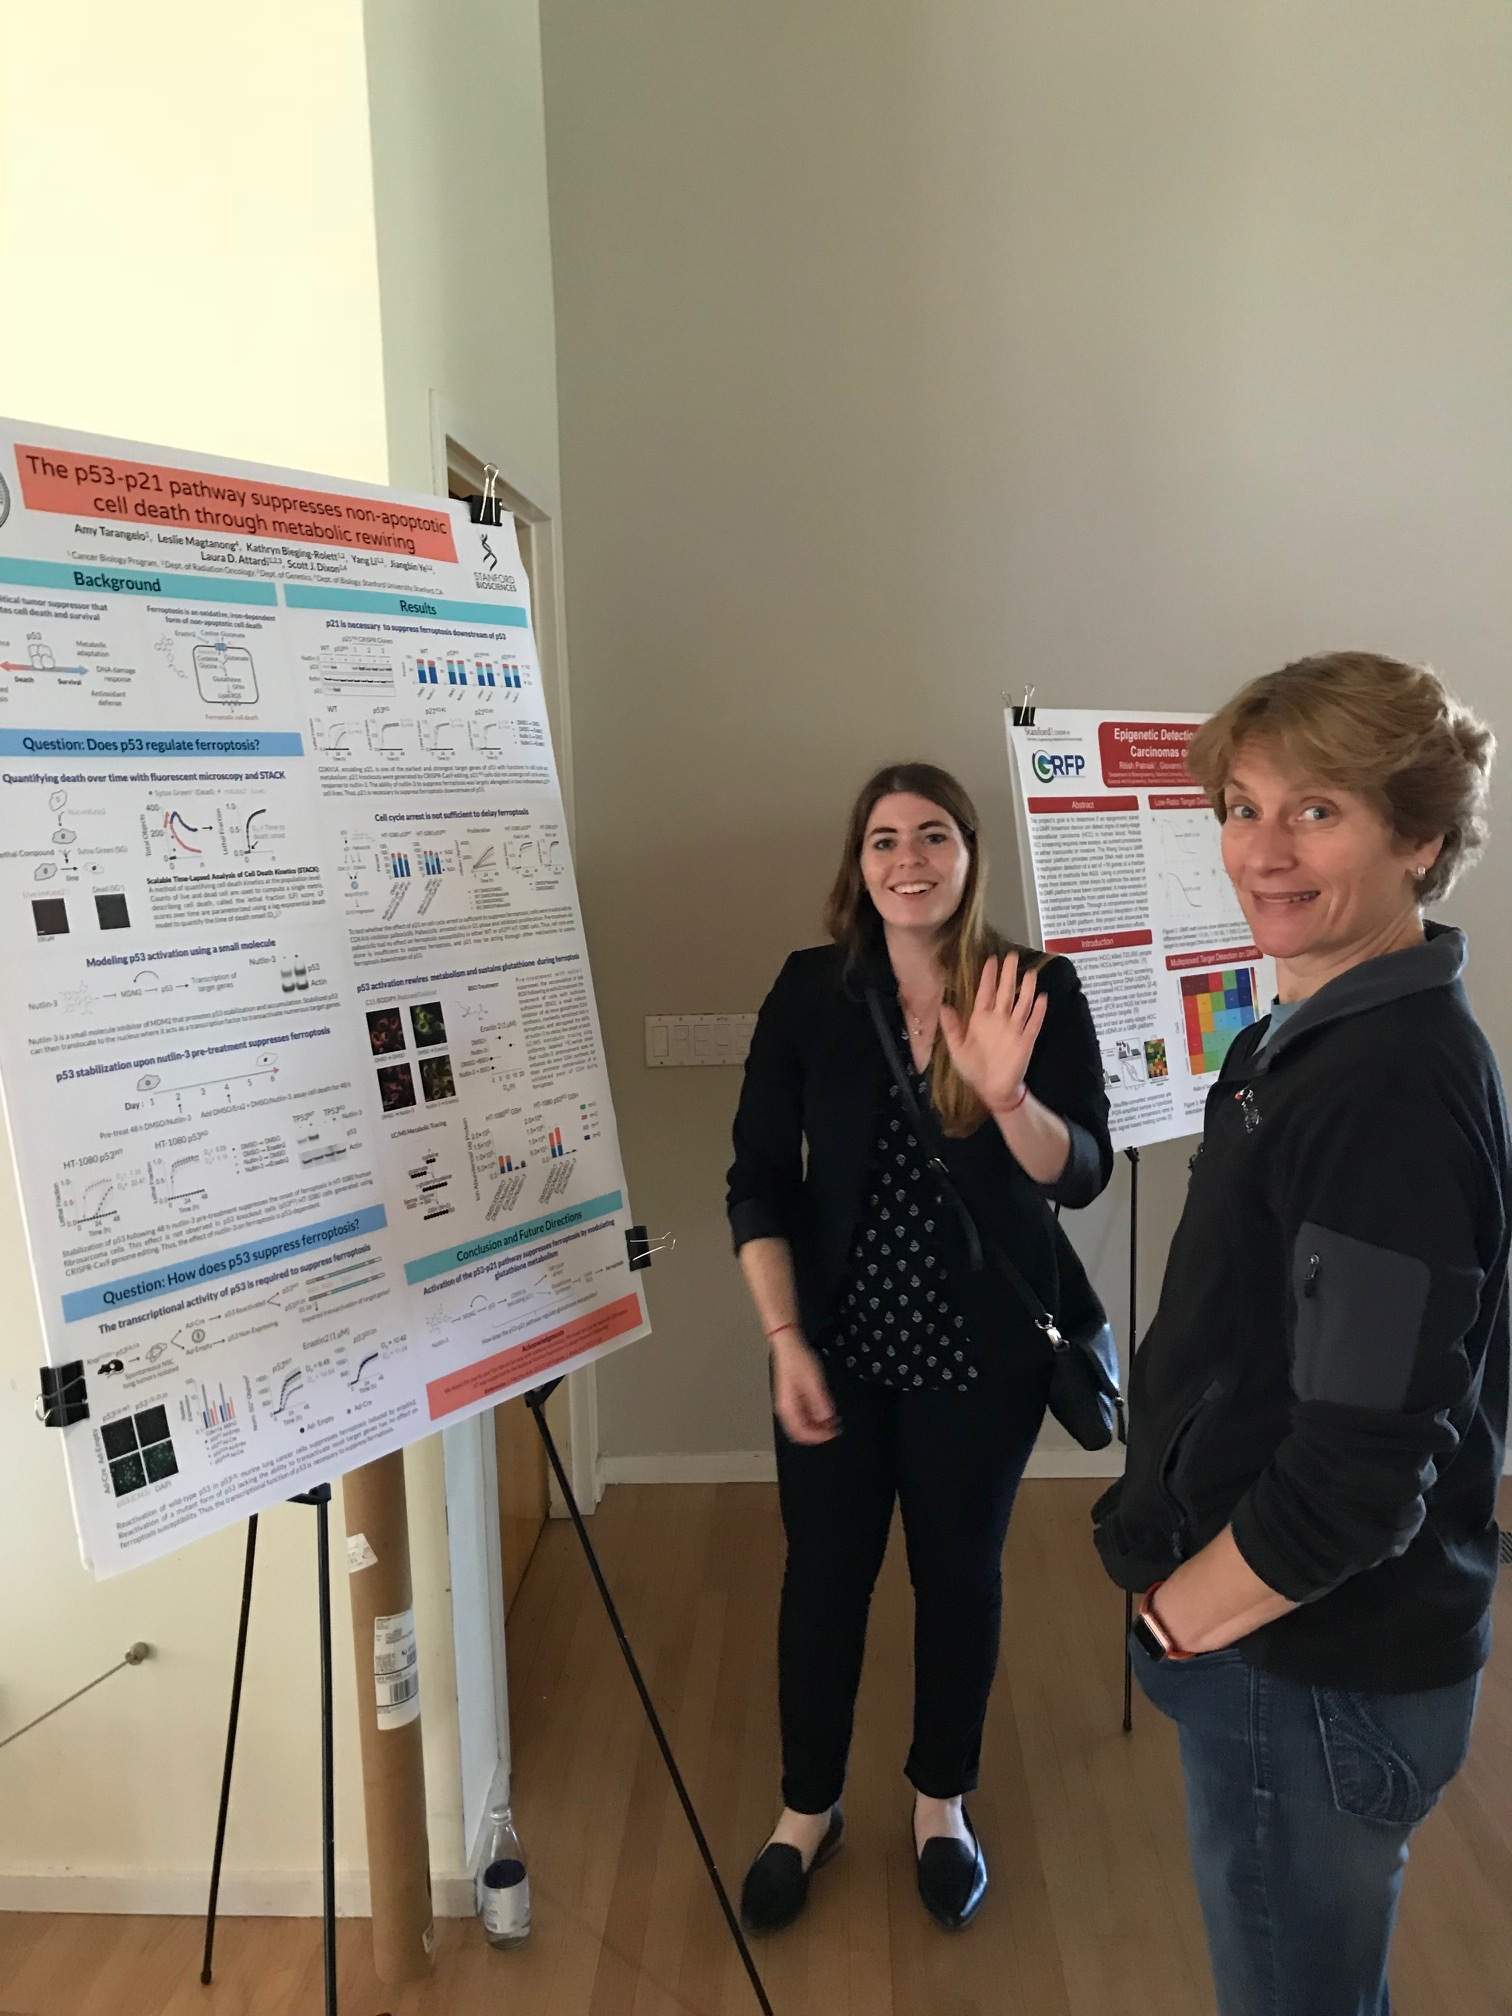 Amy discussing her work at the ChEM-H retreat - 26 Jun 18